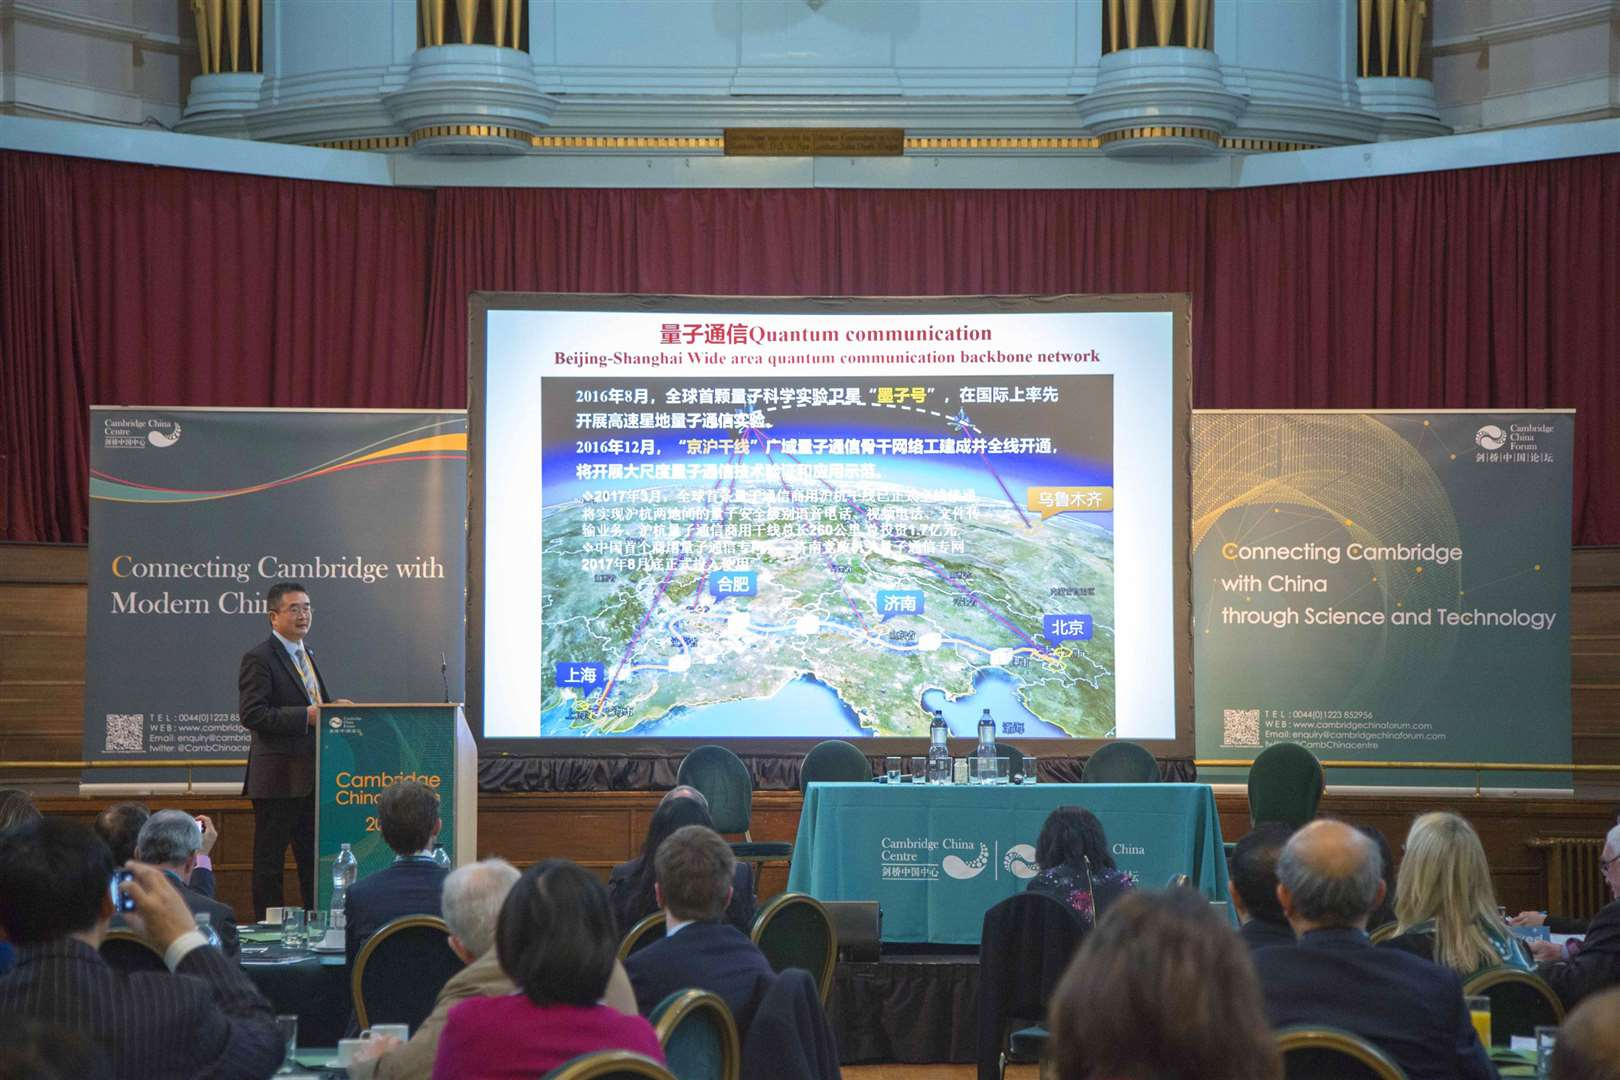 Jiang Sunan, the minister counsellor for science and technology of the Chinese Embassy in the UK, talked about Developments of science and technology in China & UK/China collaboration opportunities at the Cambridge China Forum 2018 (16955005)